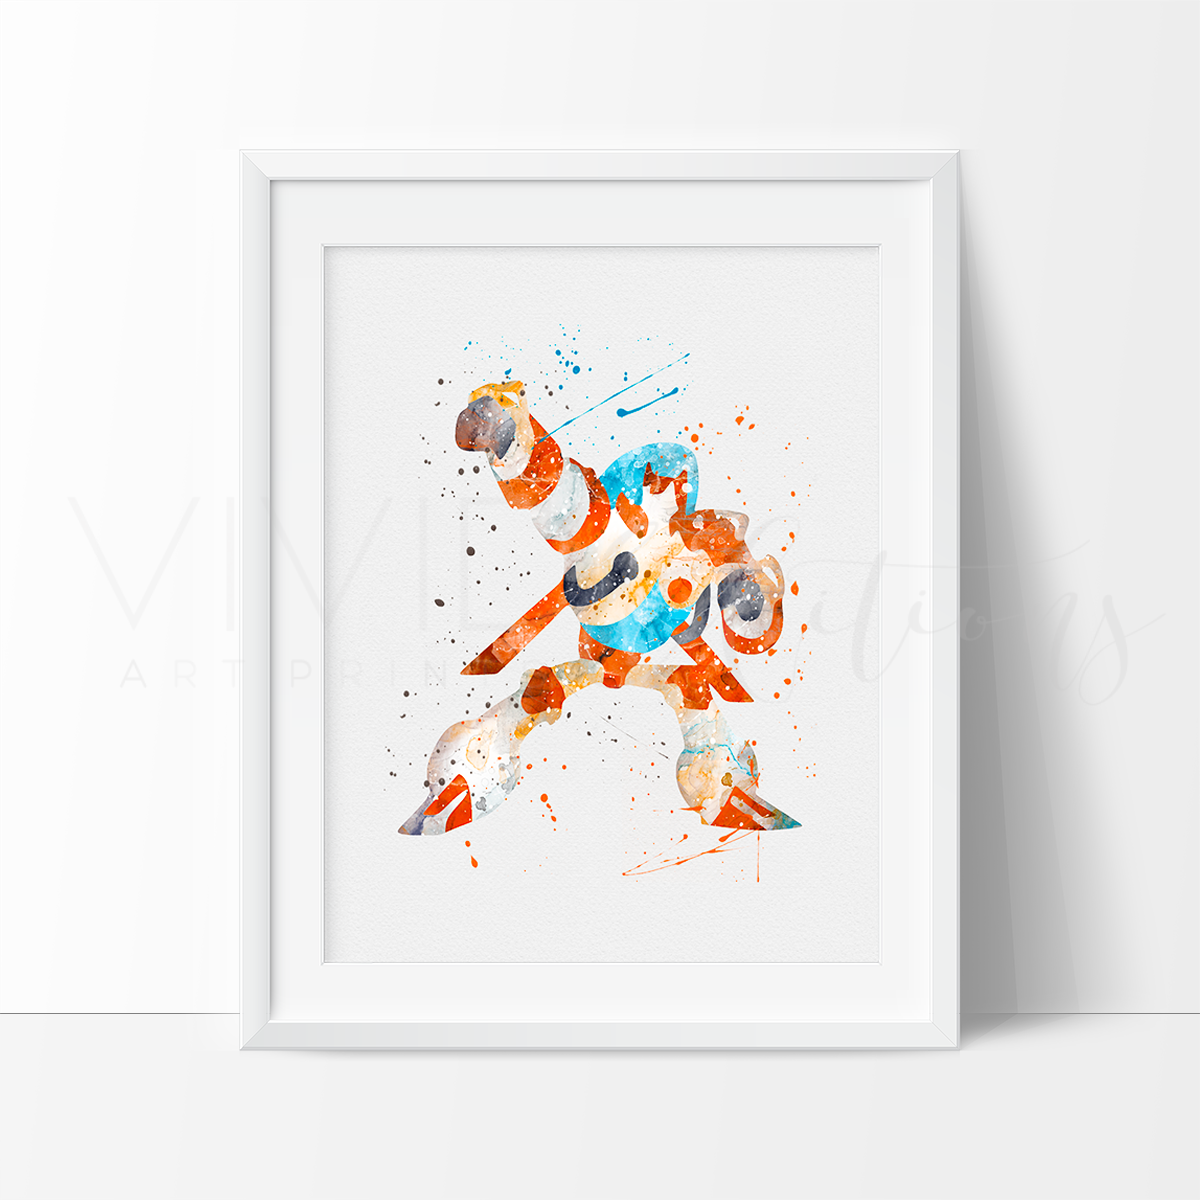 Blades, Transformers Watercolor Art Print Art Print - VIVIDEDITIONS